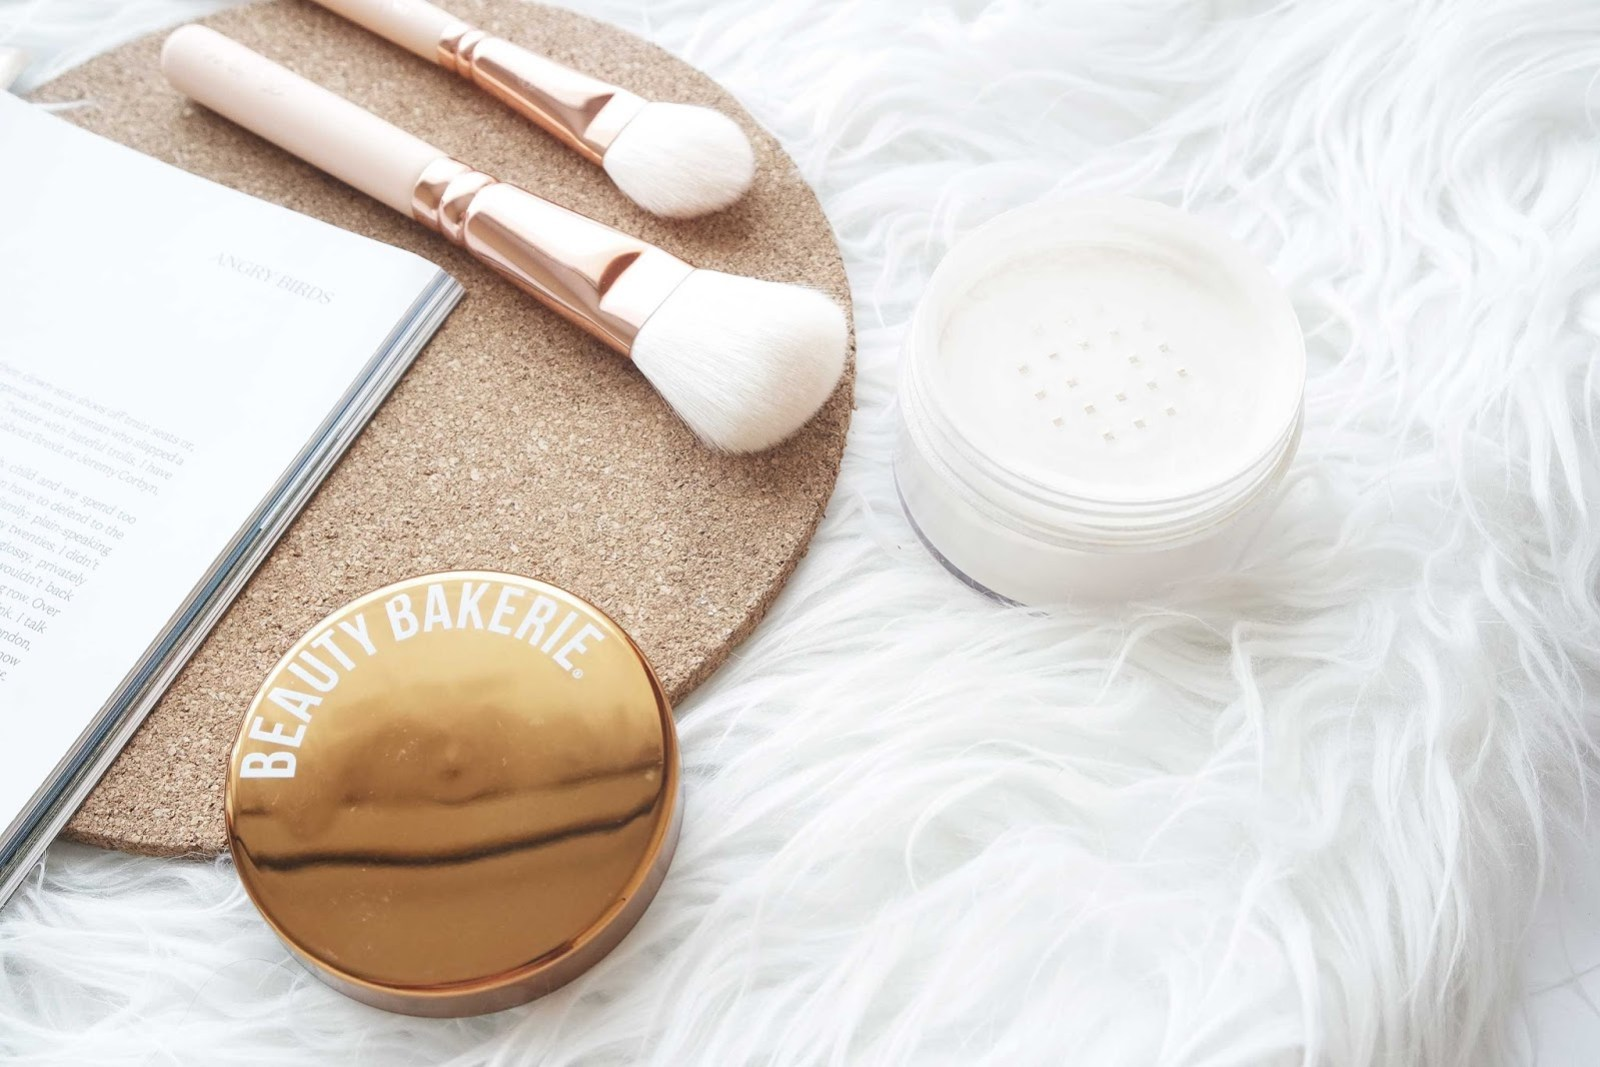 Beauty Bakerie Flour Setting Powder